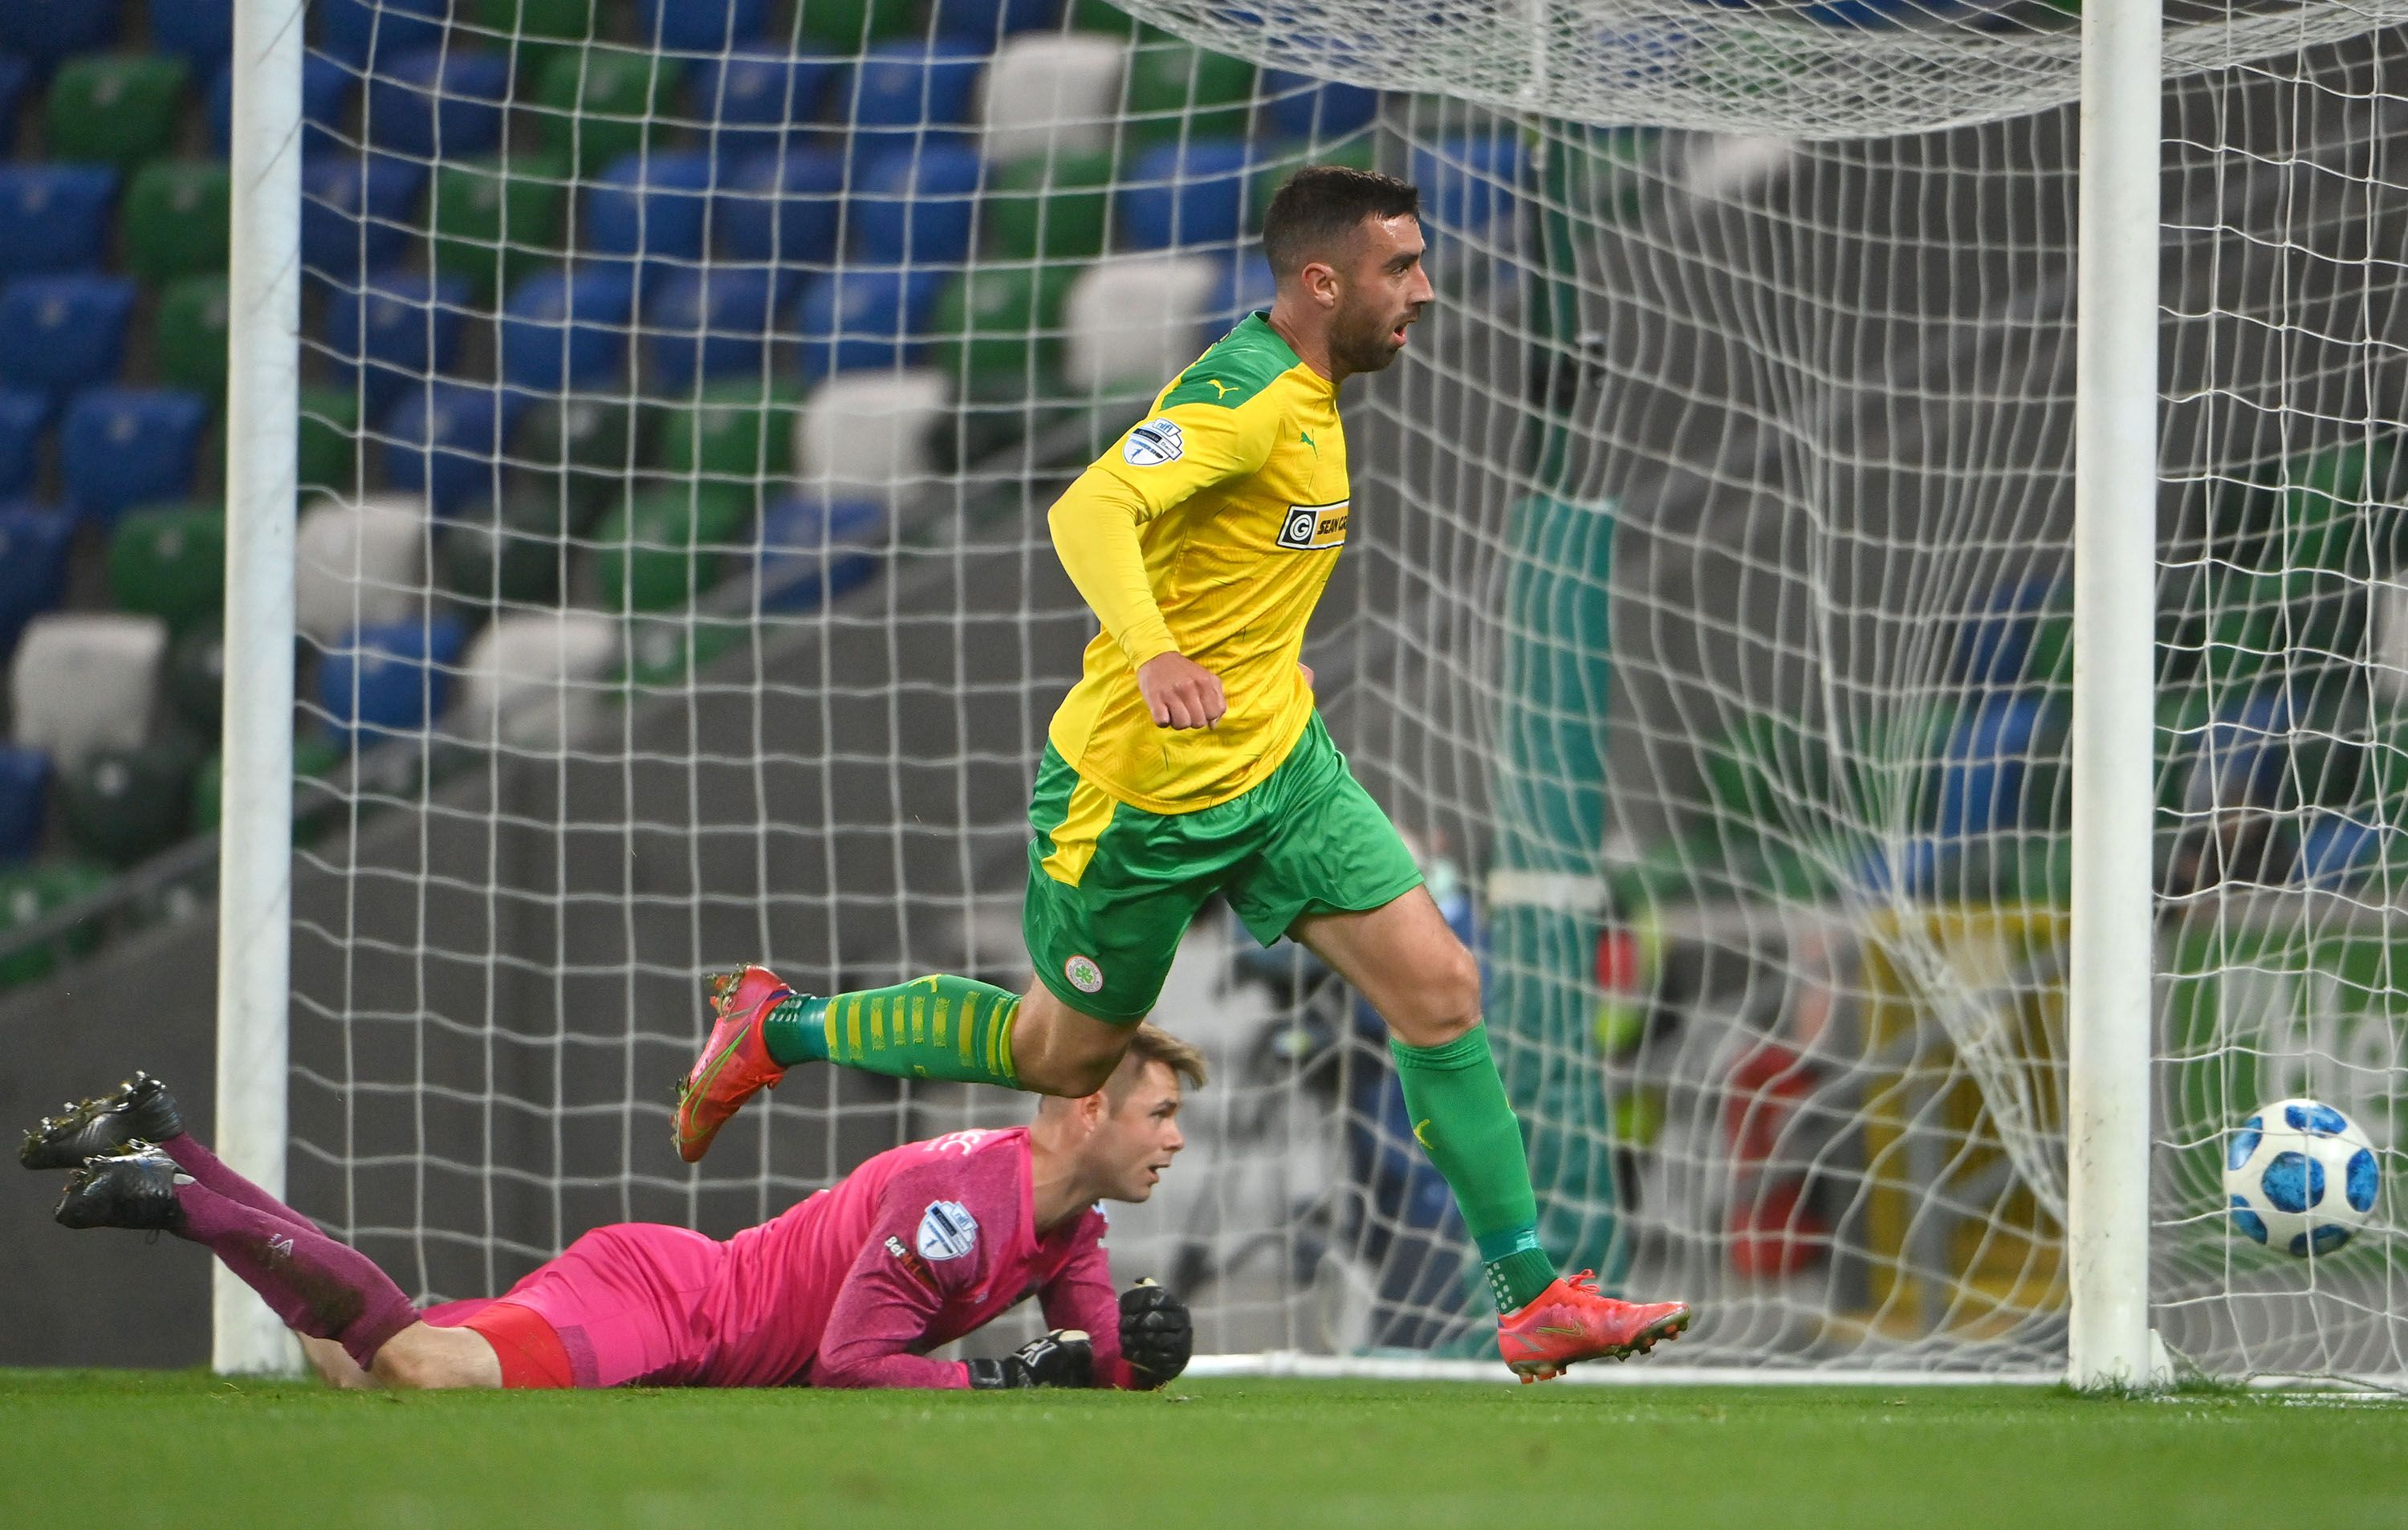 Joe Gormley netted the equaliser against Linfield on Friday